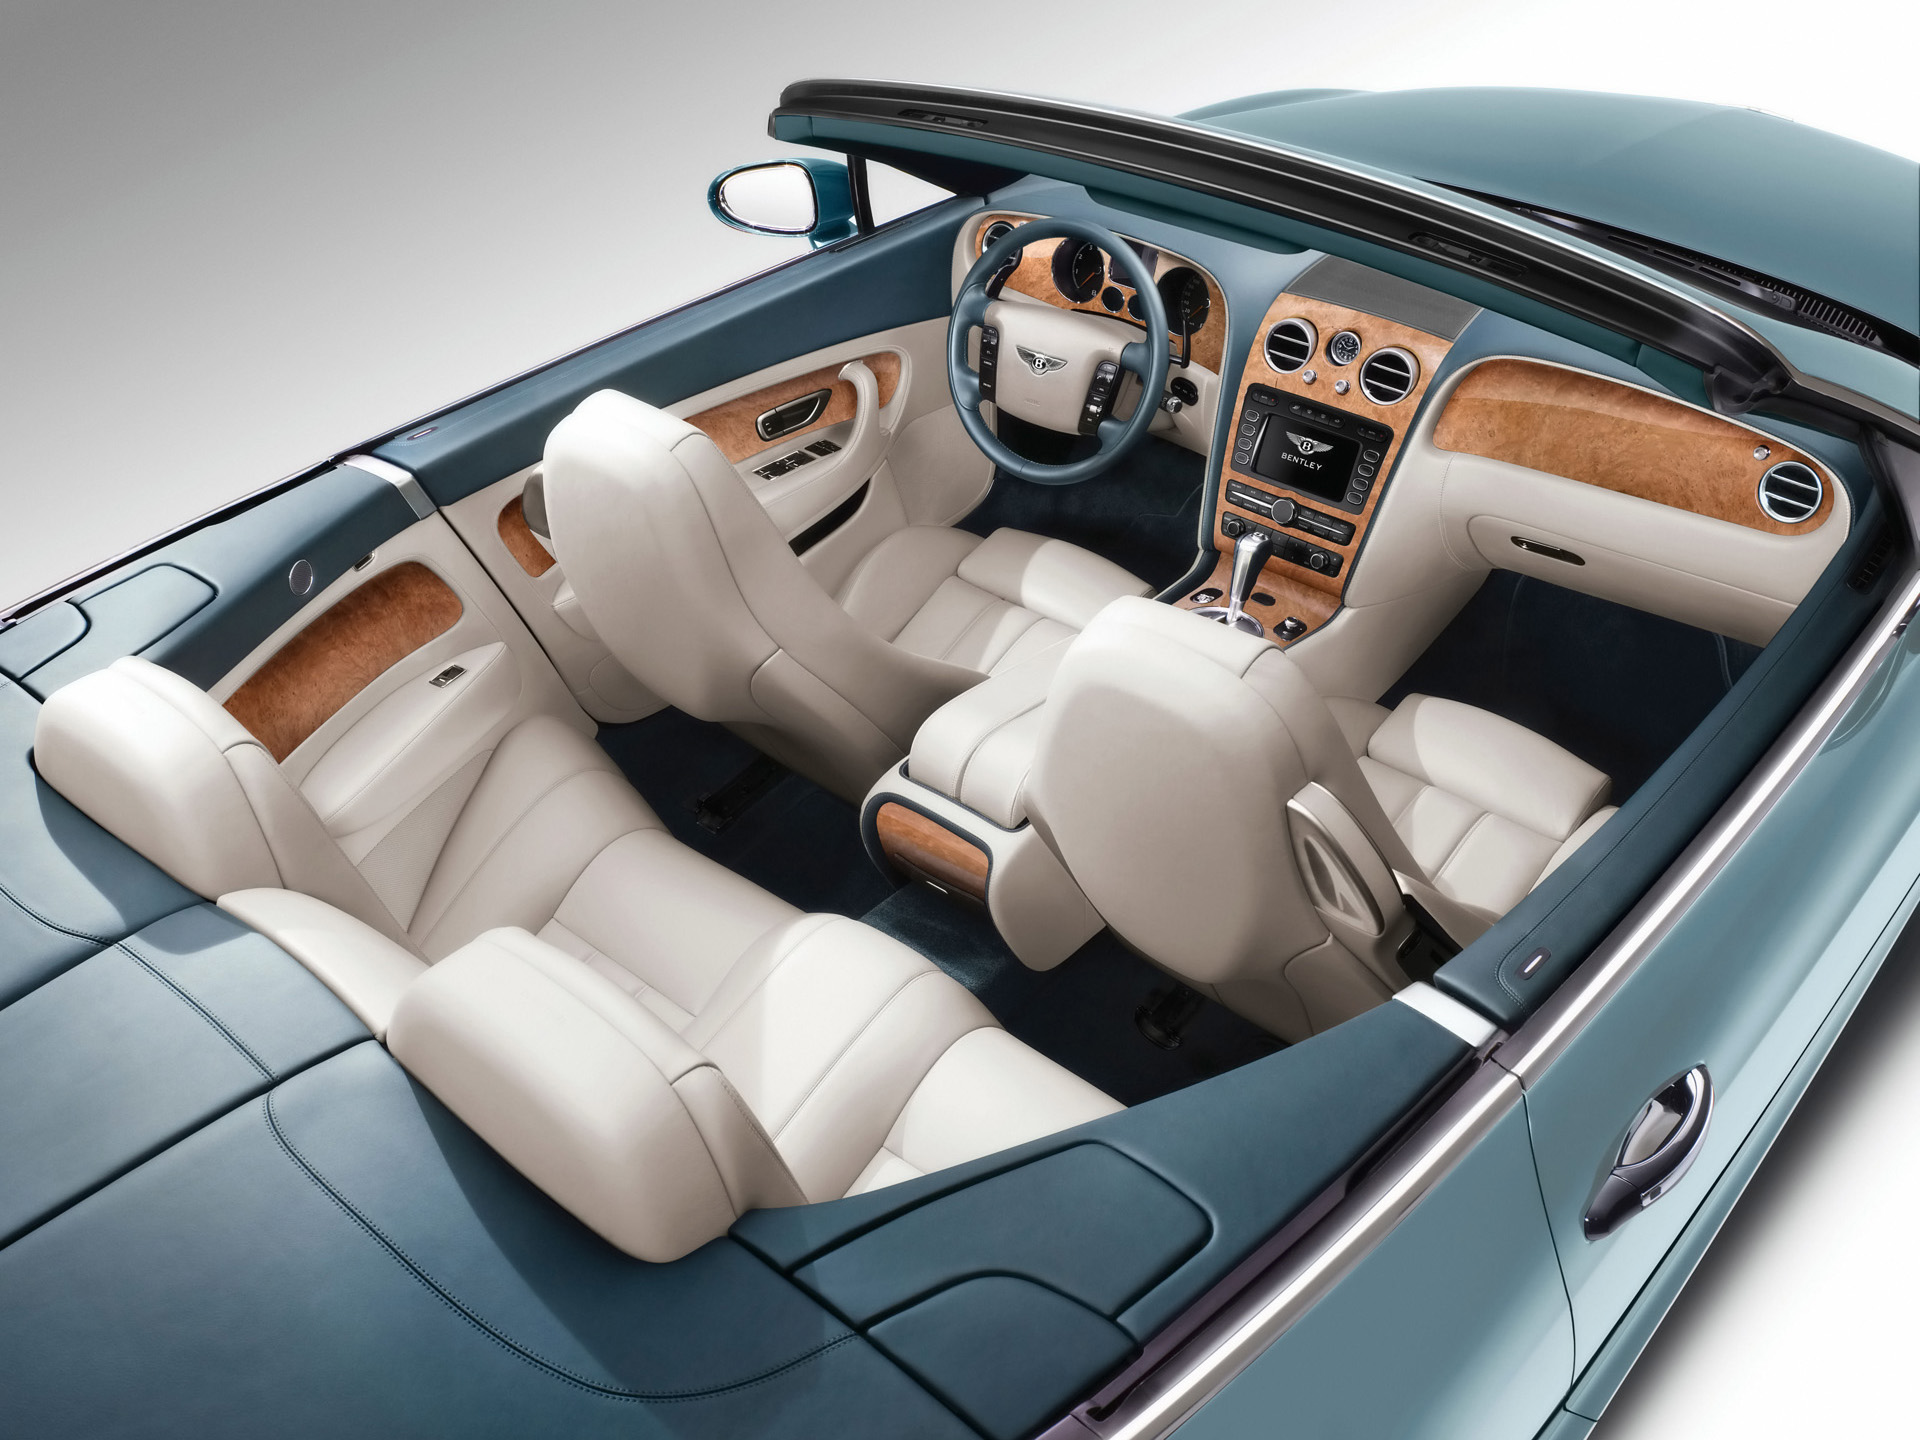 Bentley Continental GTC interior #1